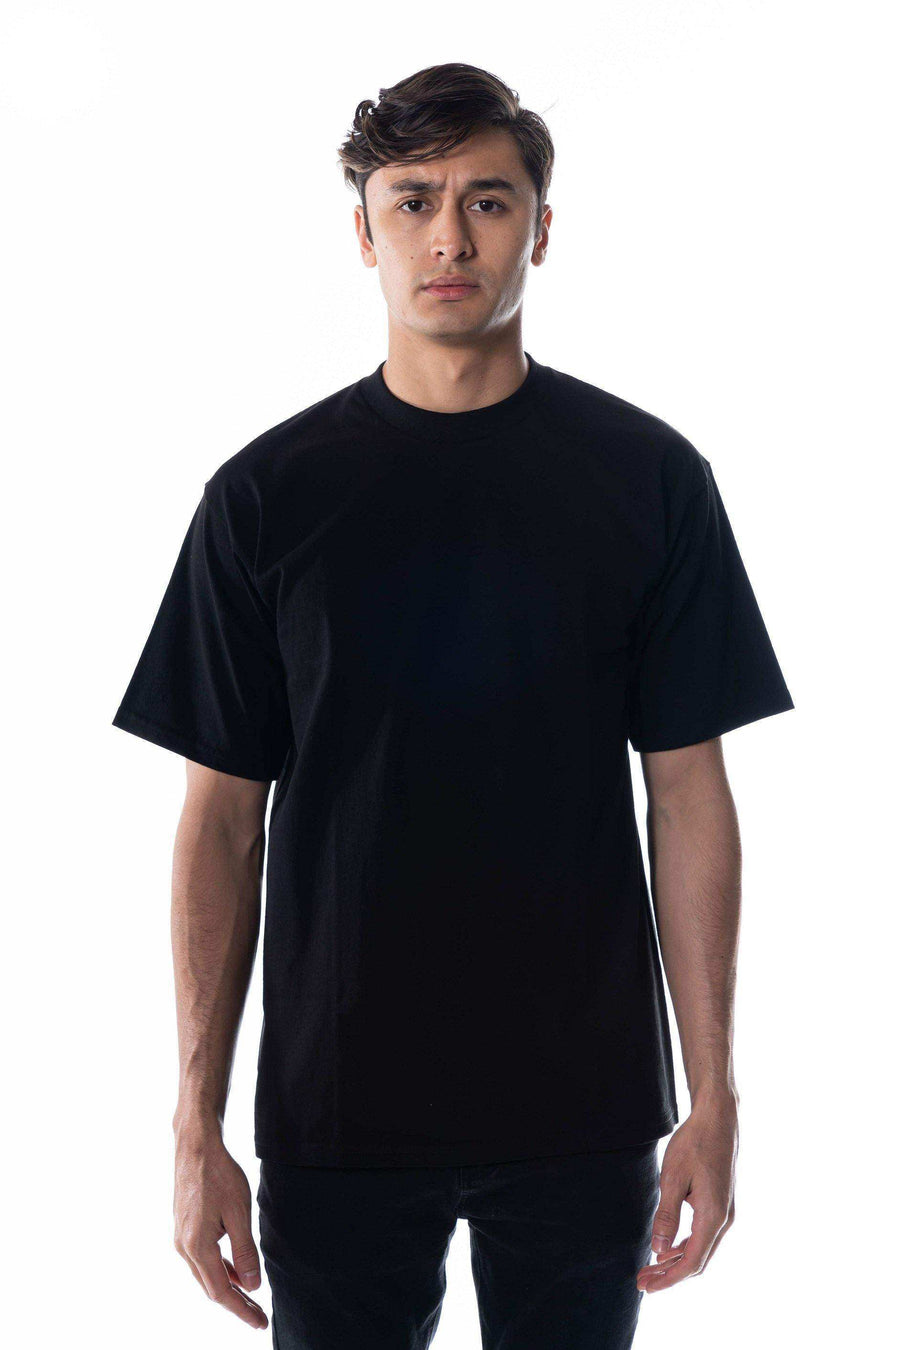 TS7000 | Men's SUPER Heavy Weight Open-End SS Tee - Tee Styled